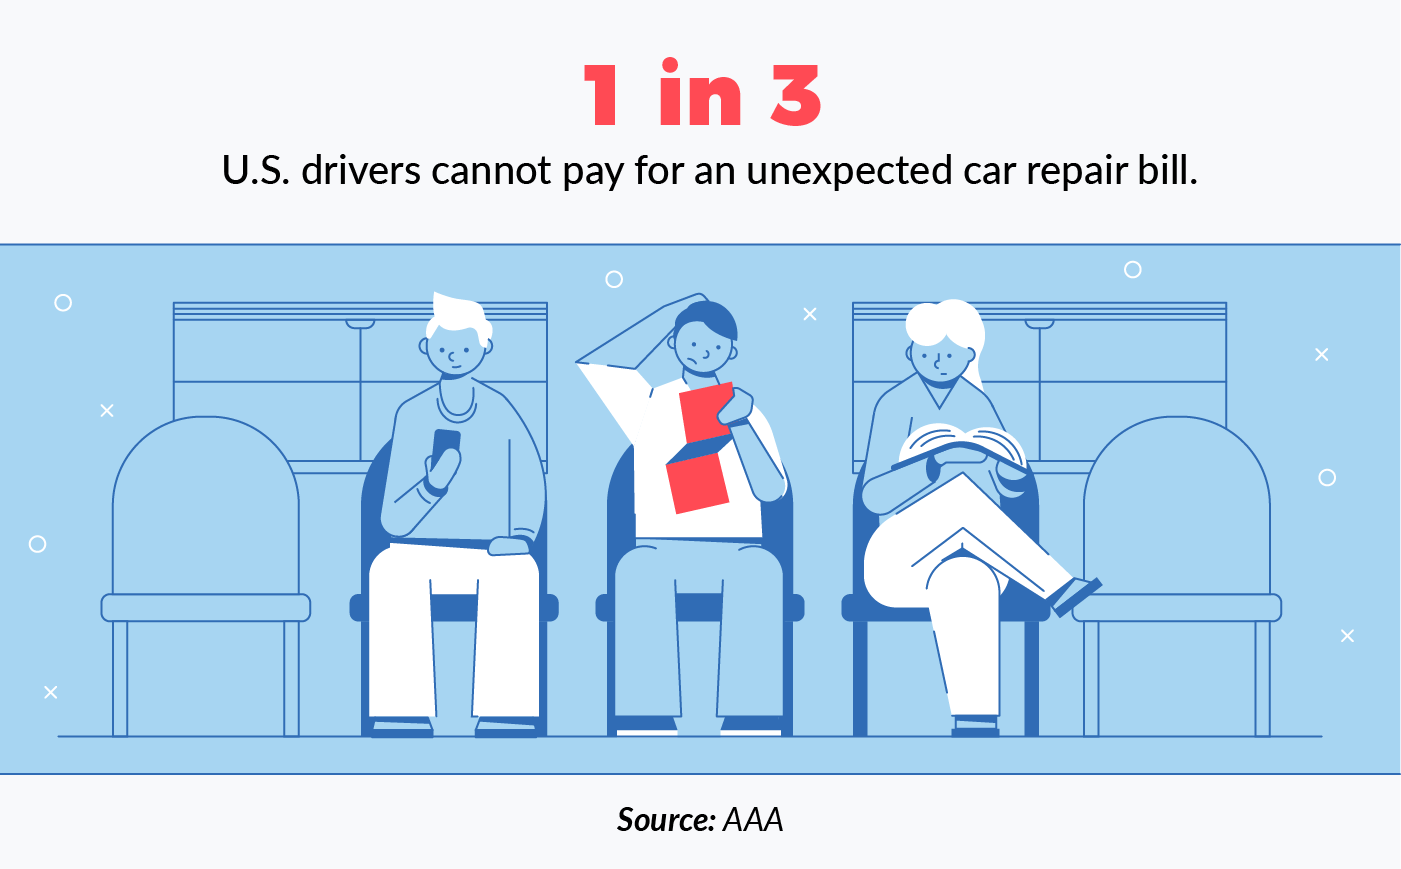 1 in 3 U.S. drivers cannot afford an unexpected car bill